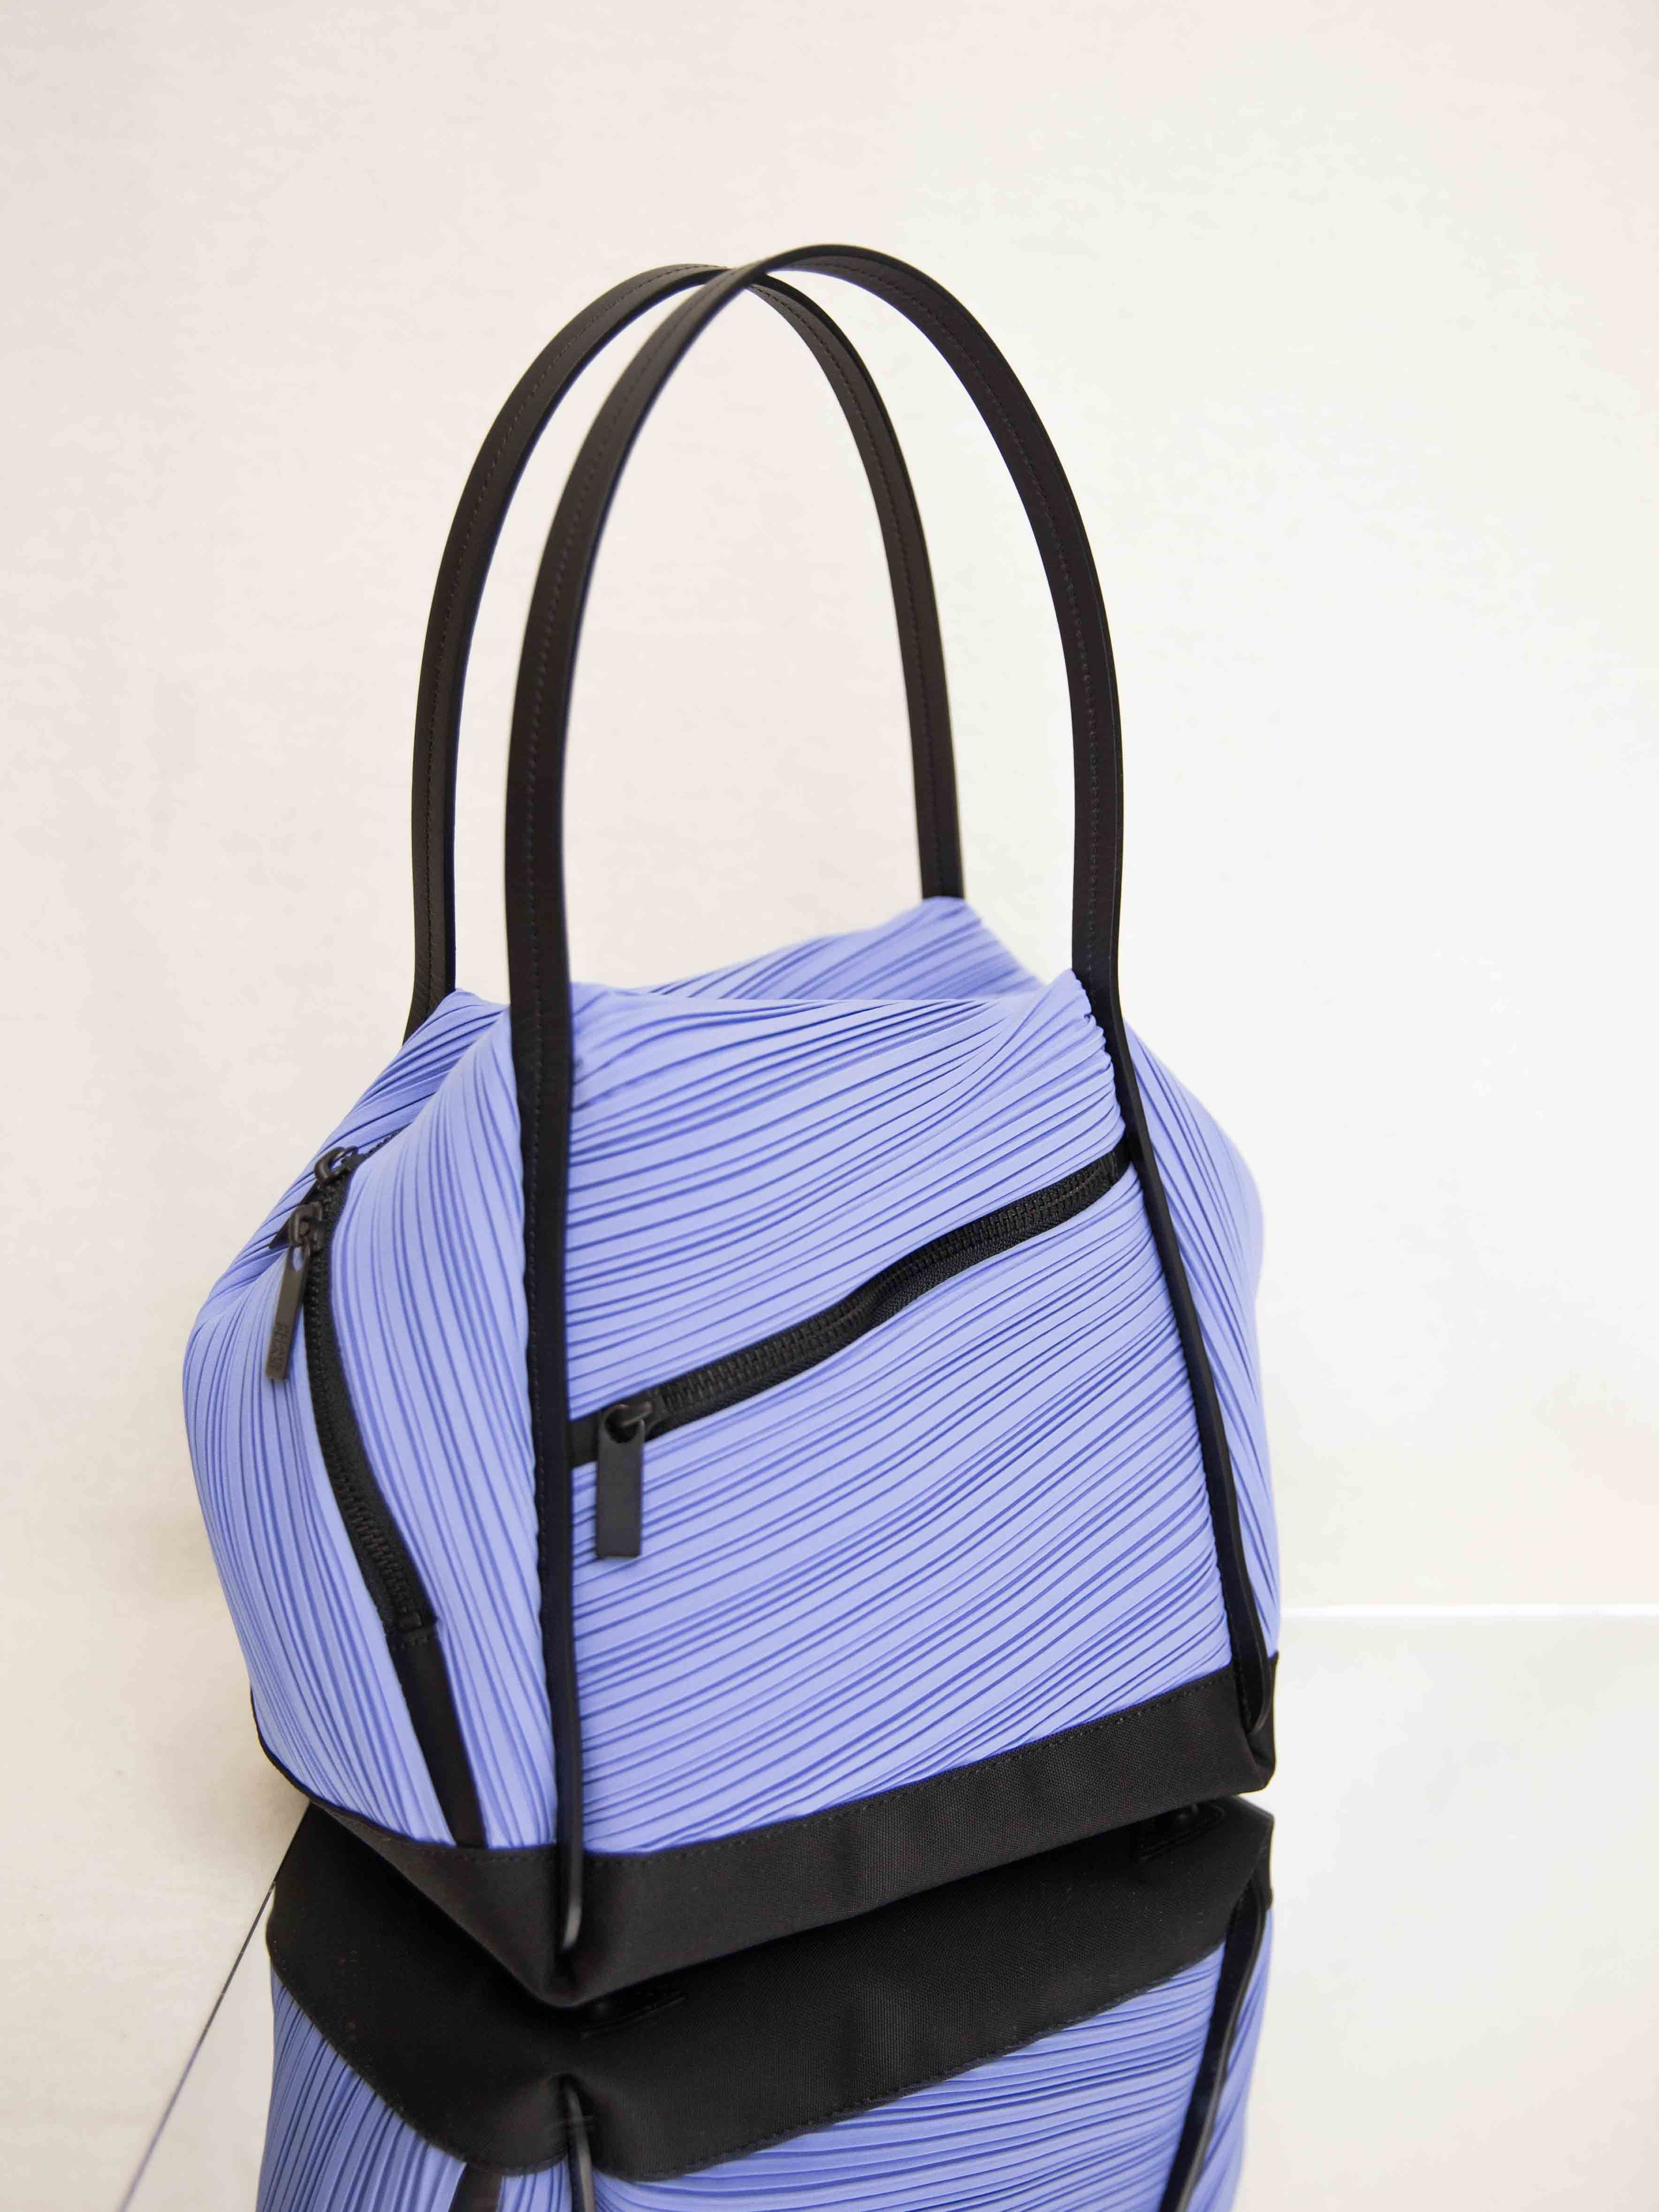 c579d9cf7c PLEATS PLEASE ISSEY MIYAKE Bias Pleats Handbag